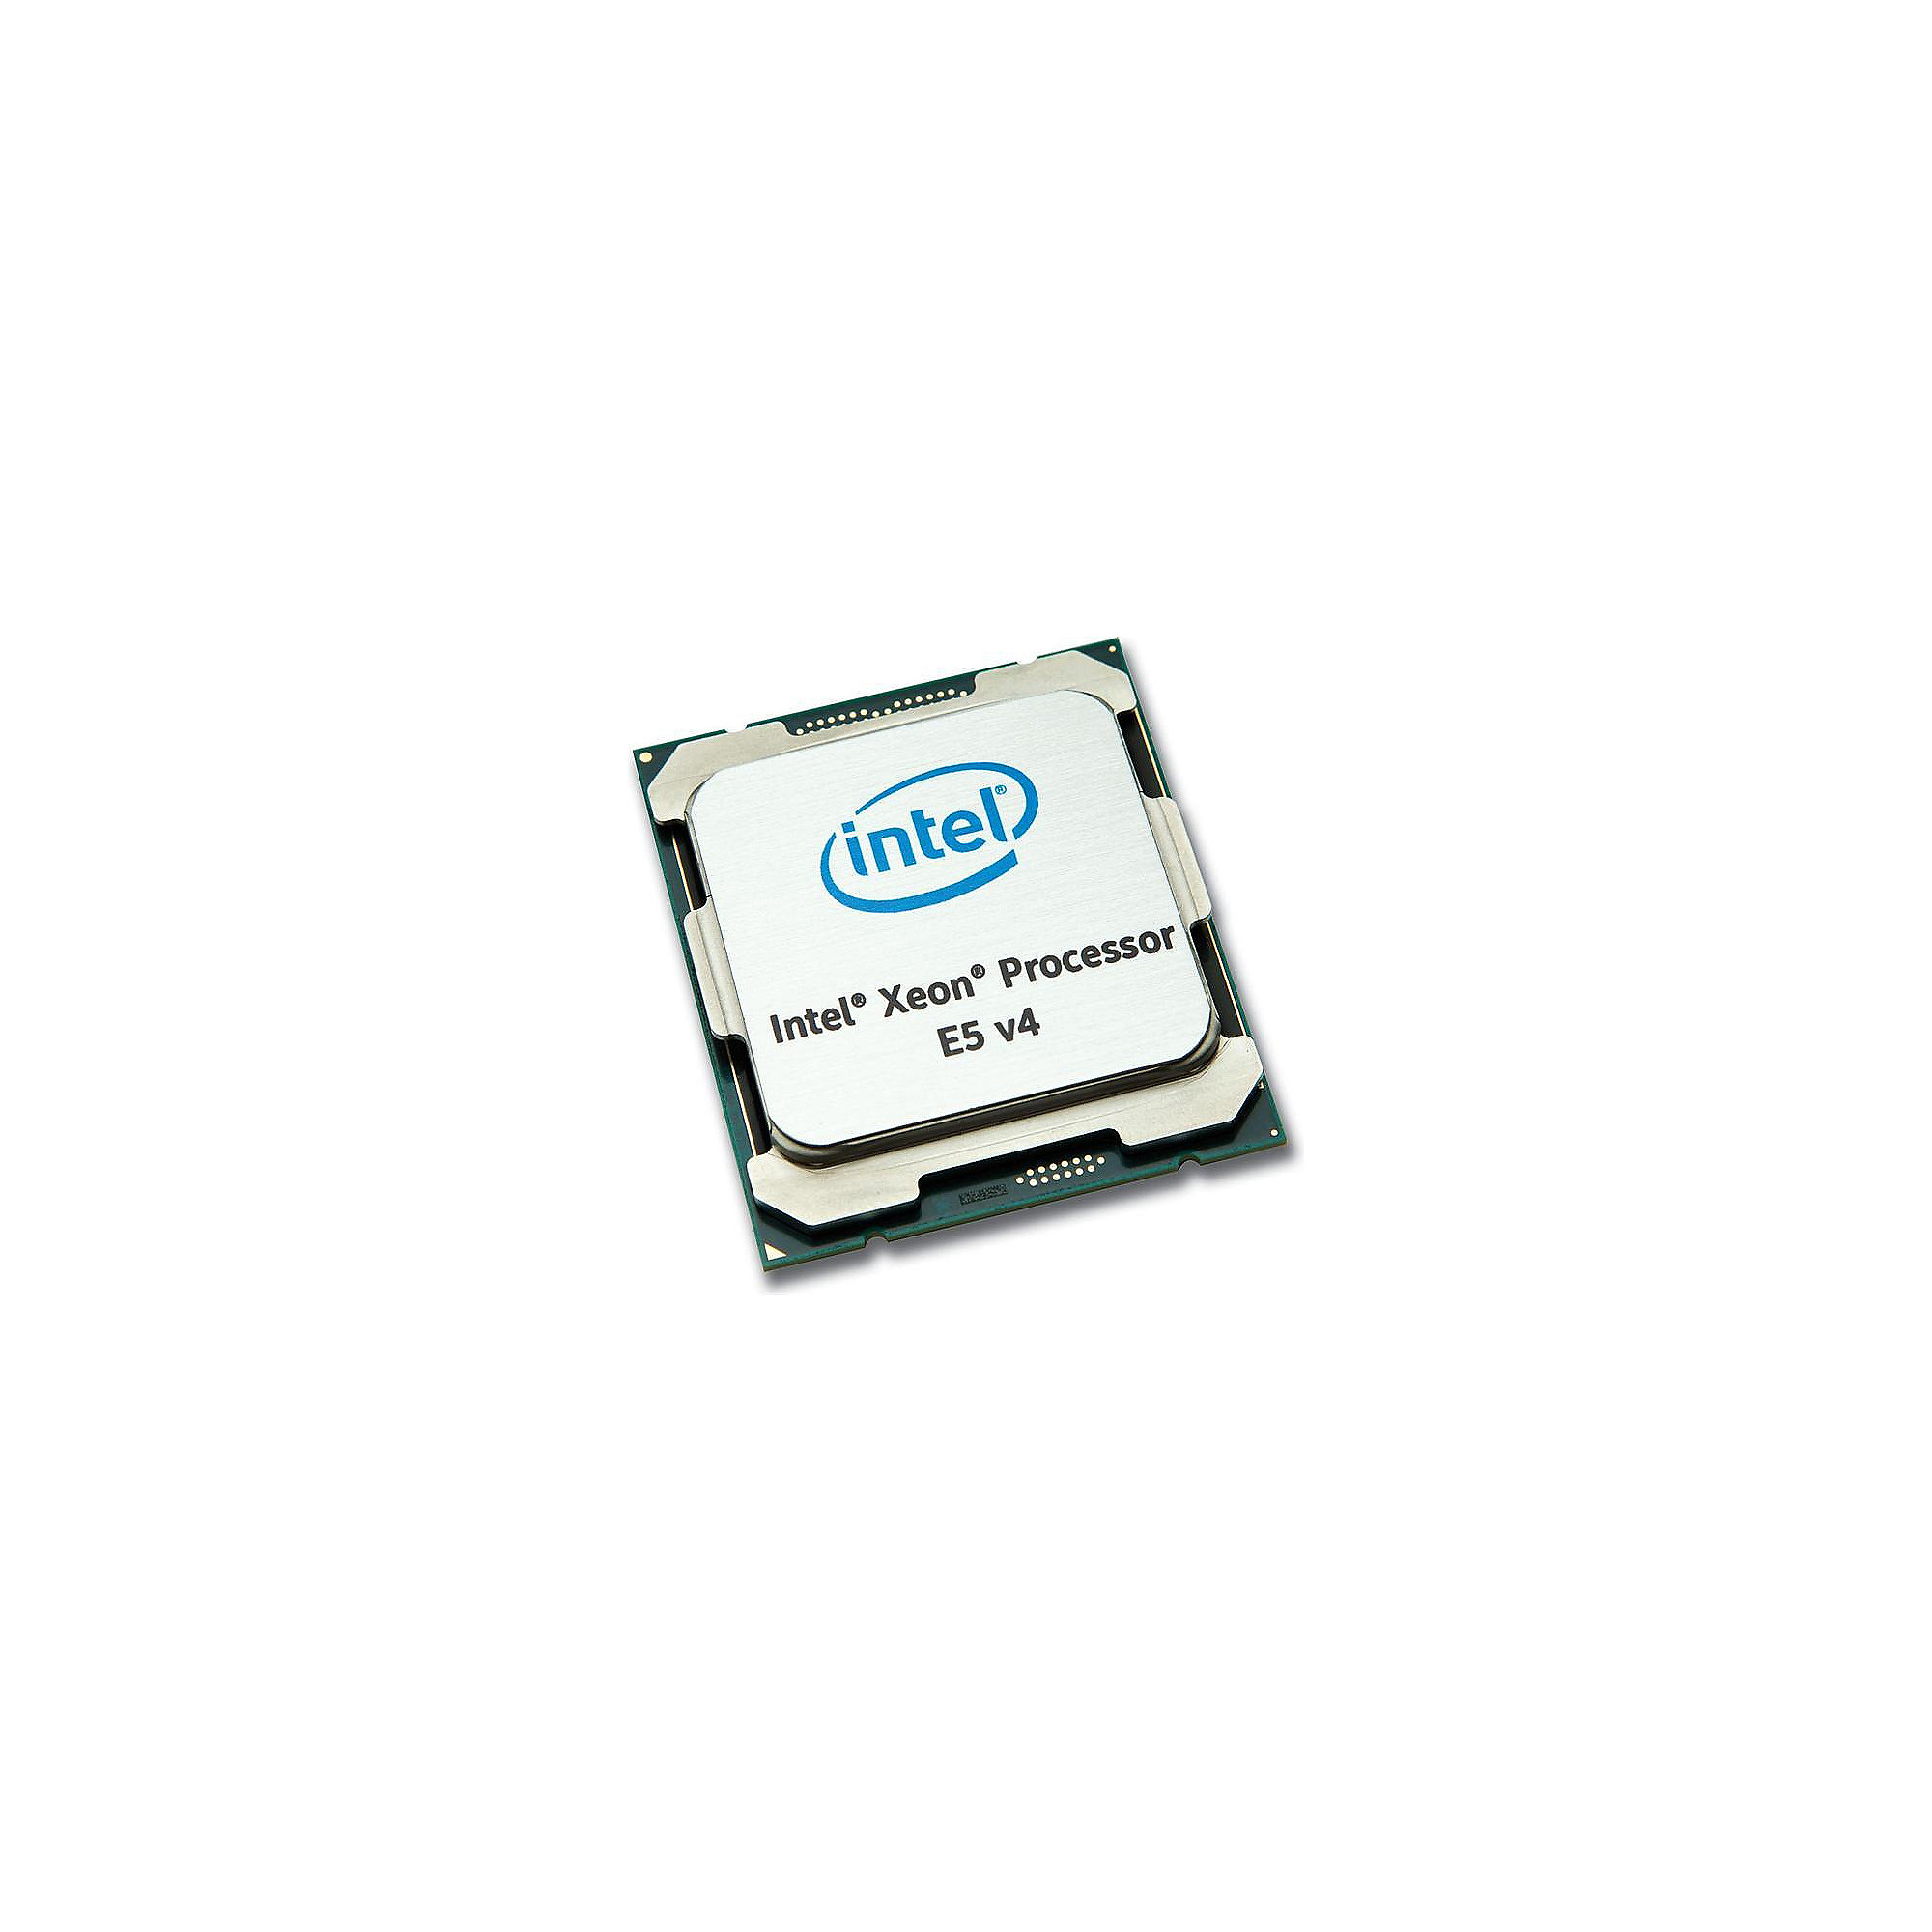 Intel Xeon E5-2660v4 14x 2,0GHz 35MB Turbo/HT (Broadwell-EP) Sockel 2011-3 BOX